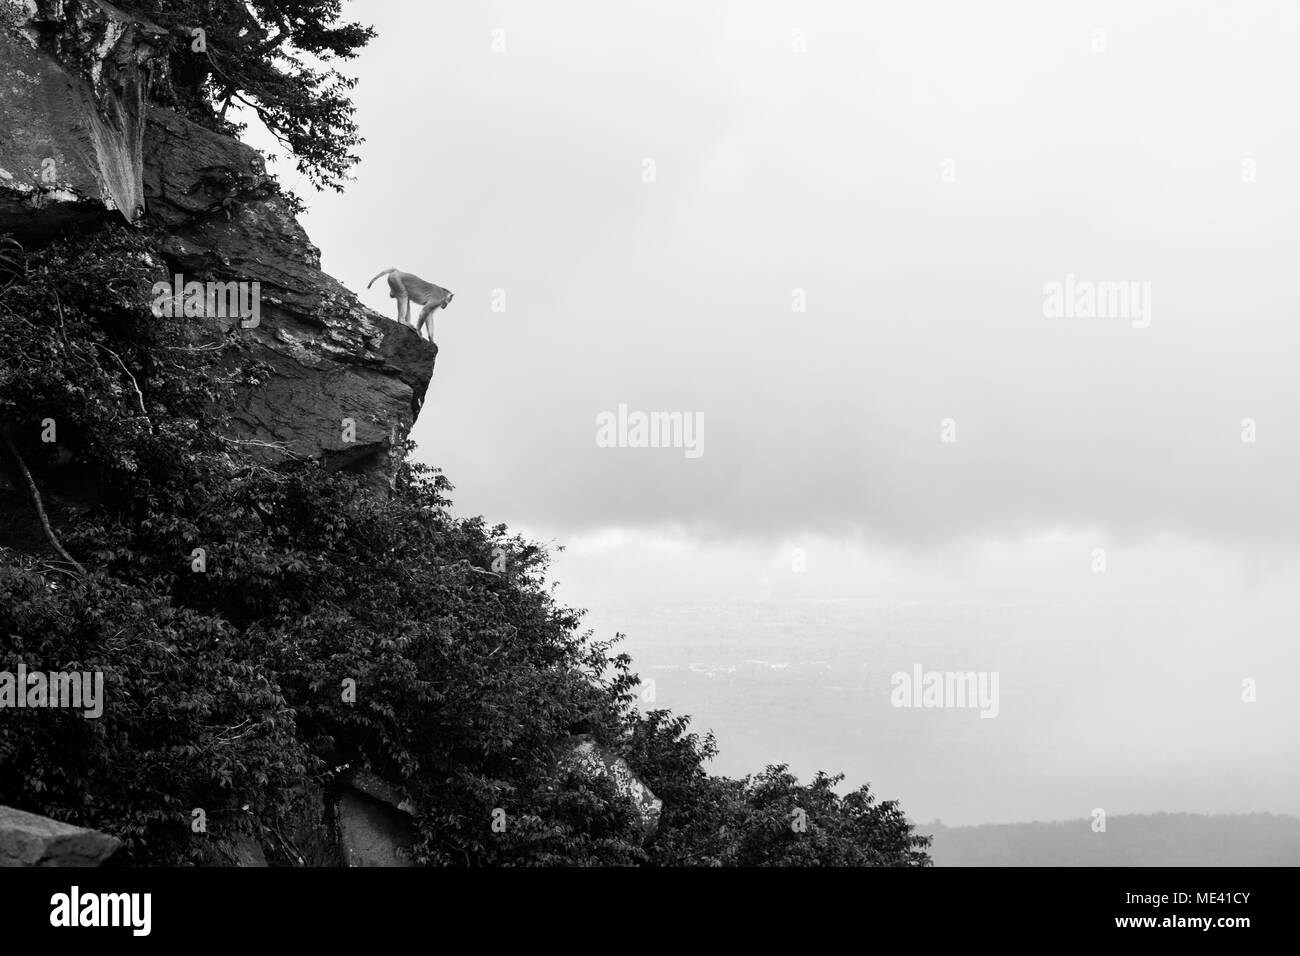 Adult macaque monkey alone on cliff face of Mount Popa, climbing on top of a rock and clouds, looking down upon Burma Myanmar South East Asia - Stock Image